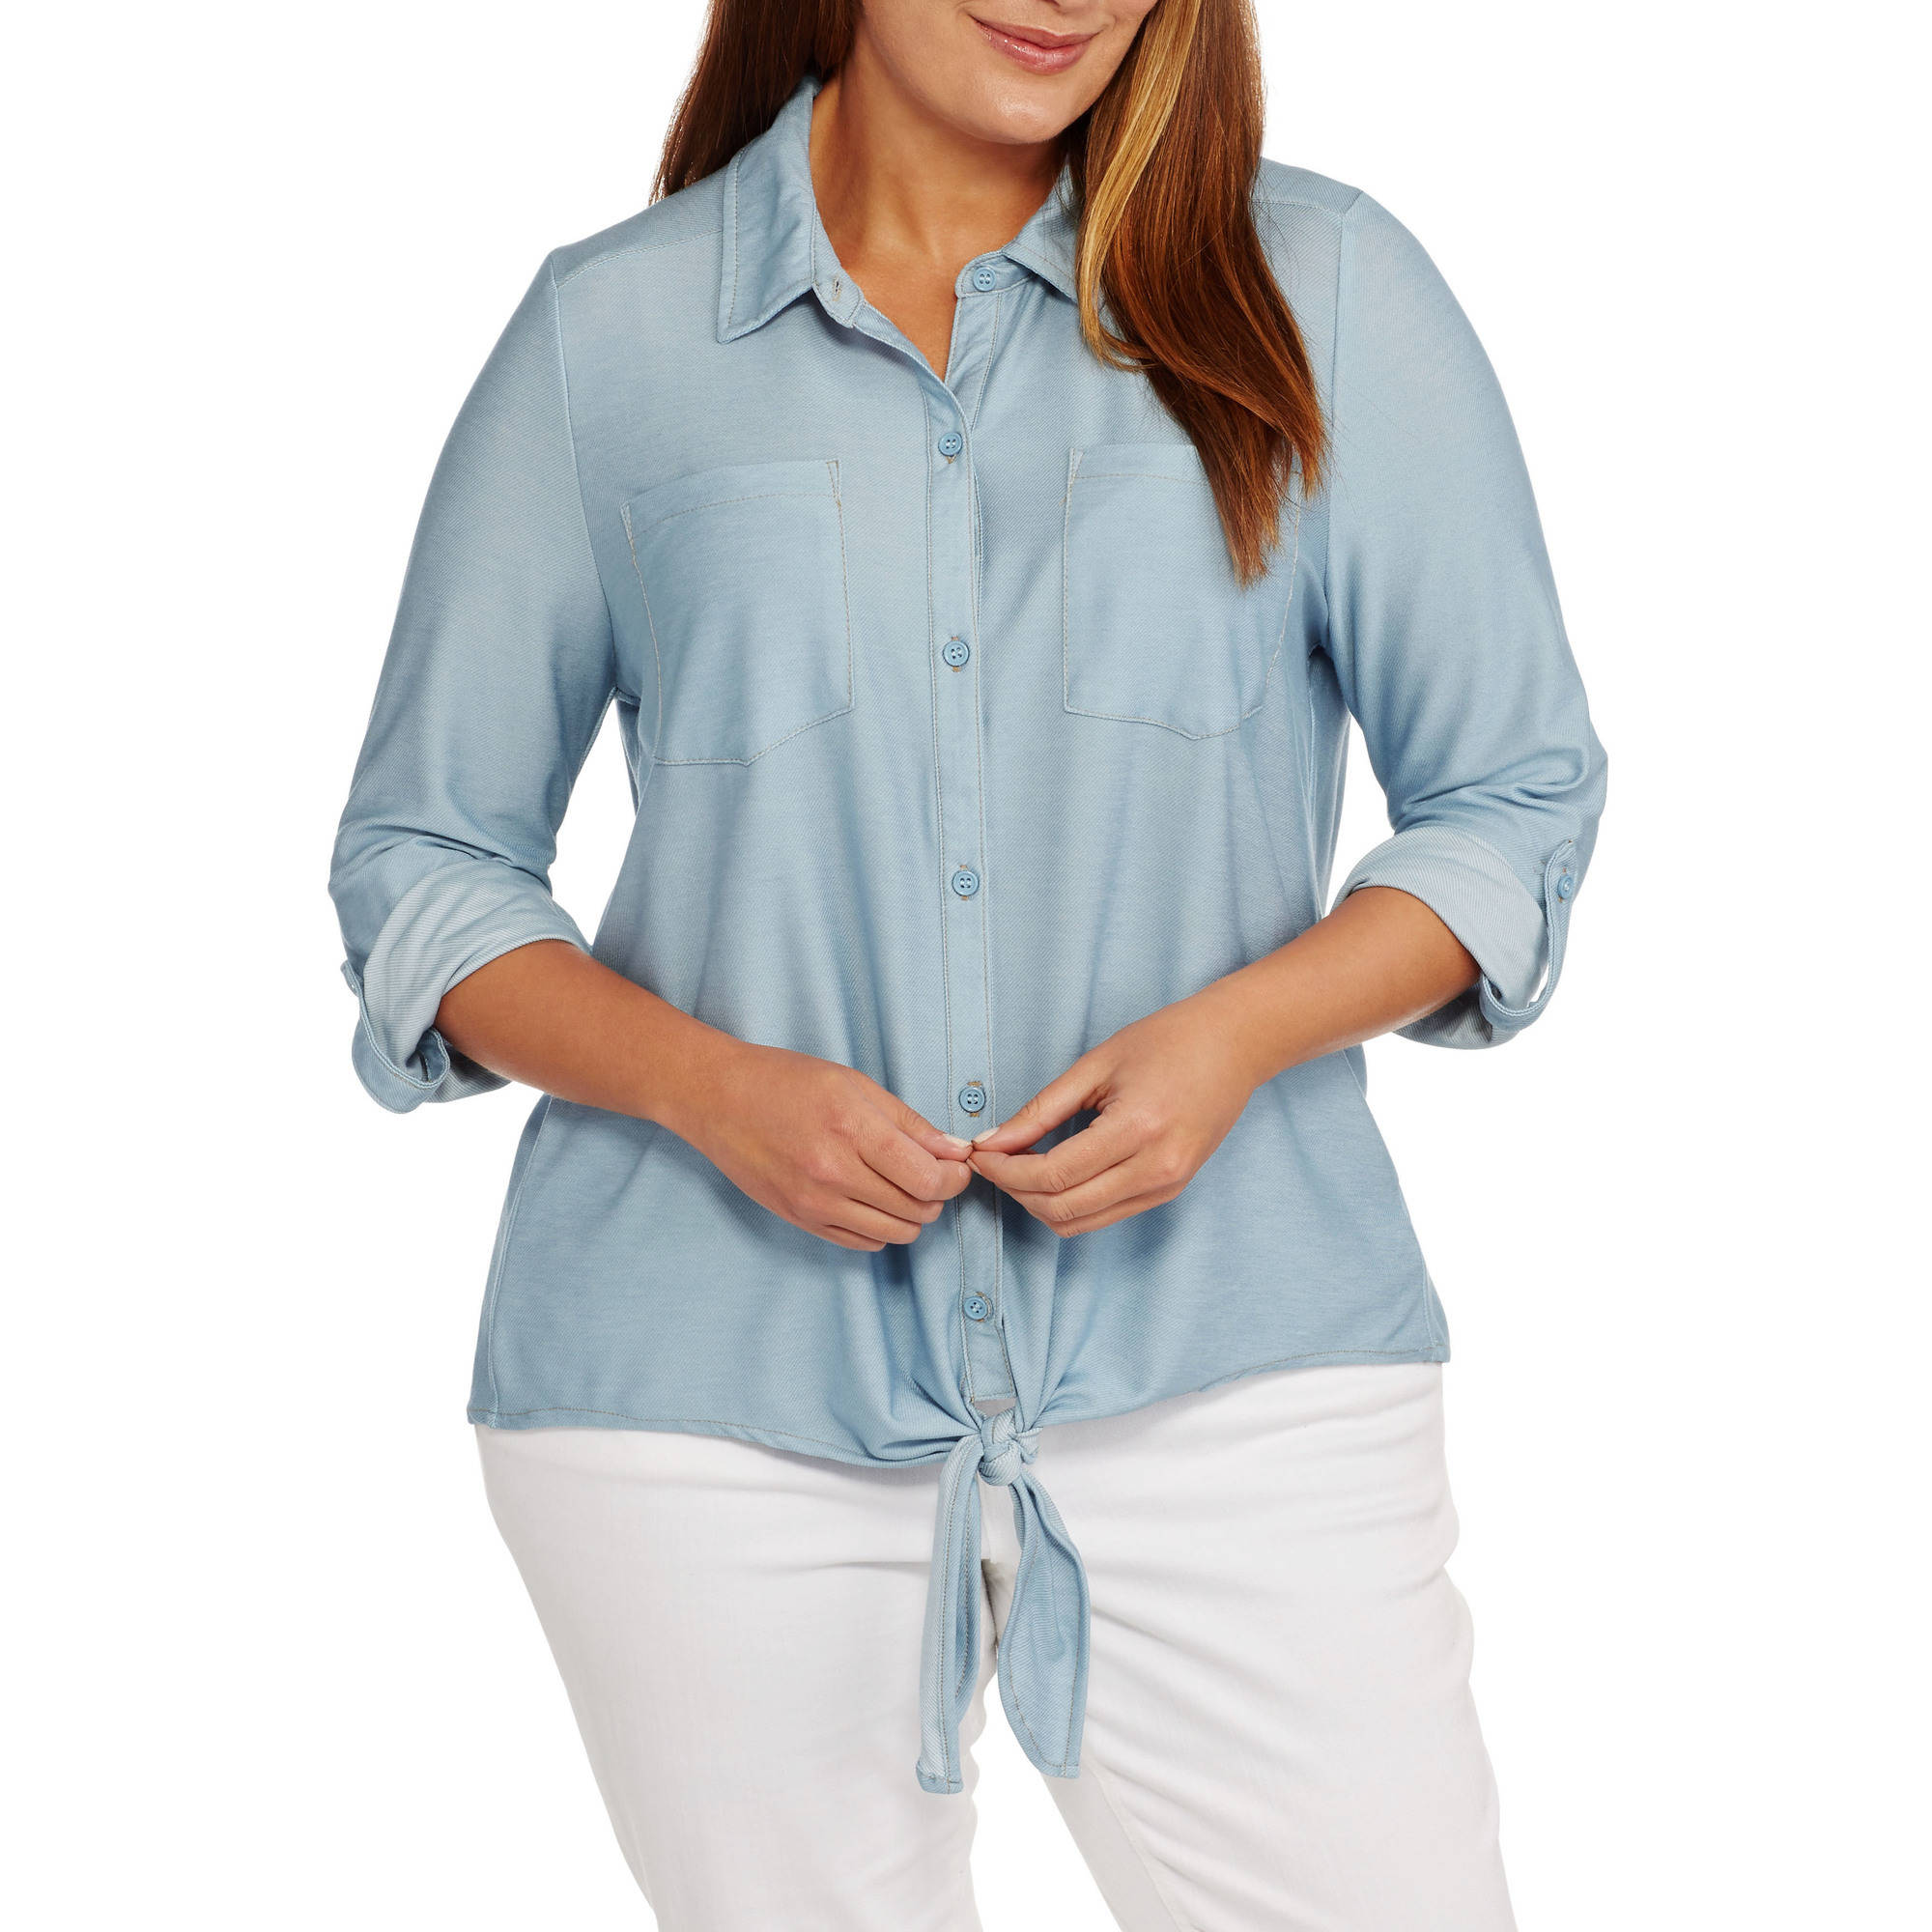 French Laundry Women's Plus Tie Front Button Down Denim Jersey Shirt